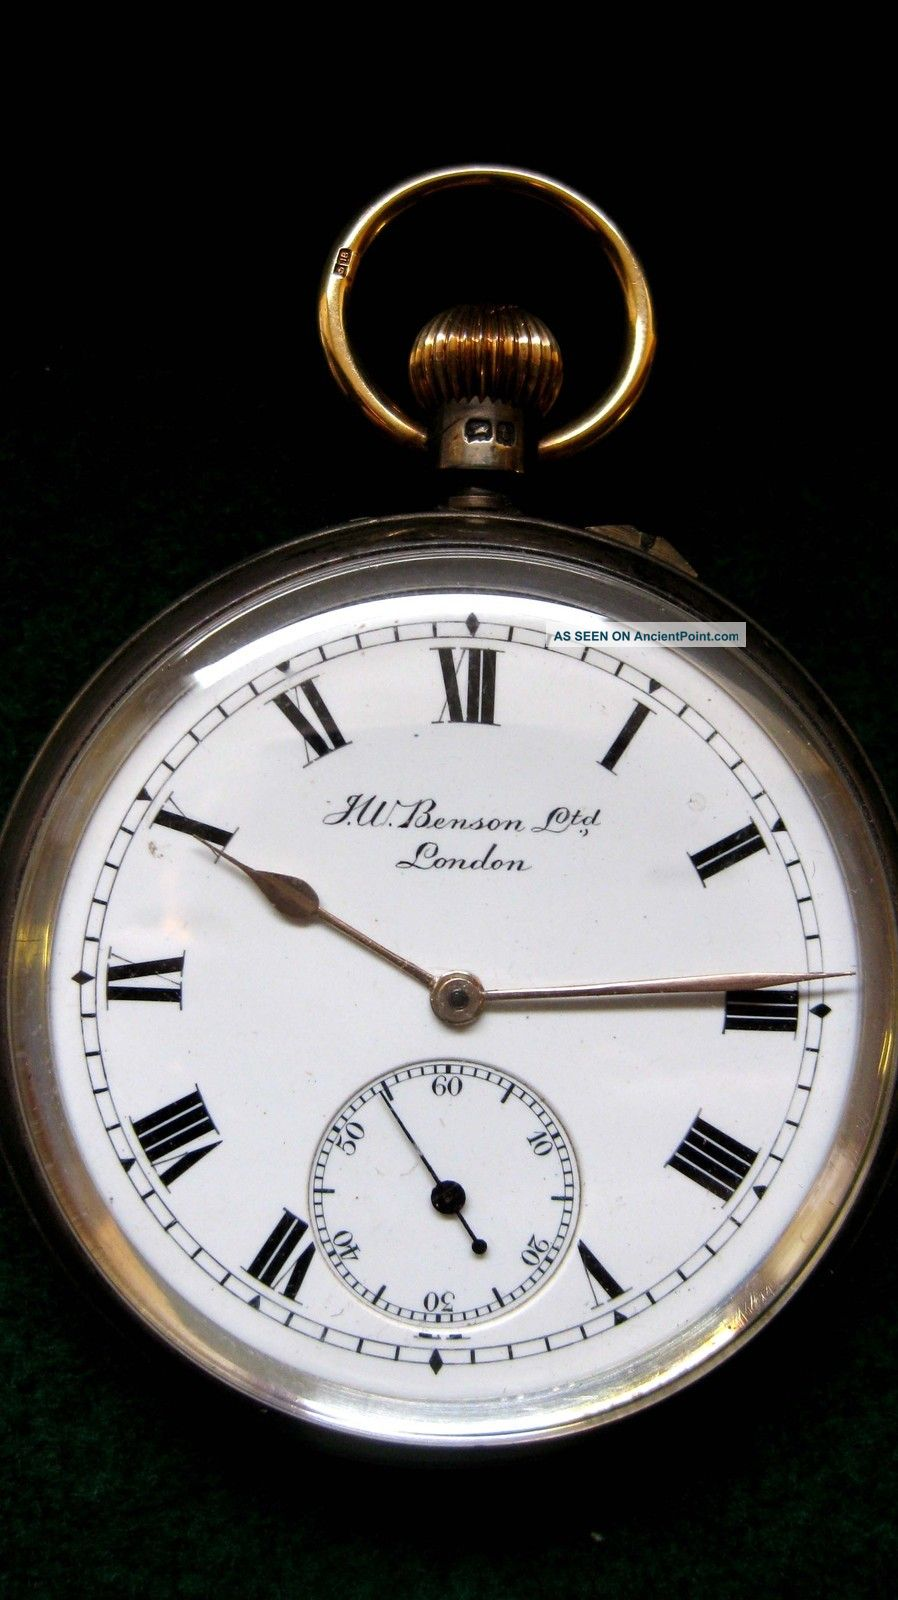 Solid Silver Pocket Watch - - J.  W.  Benson Ltd.  Of London.  Hallmarked: - London 1919 Pocket Watches/ Chains/ Fobs photo